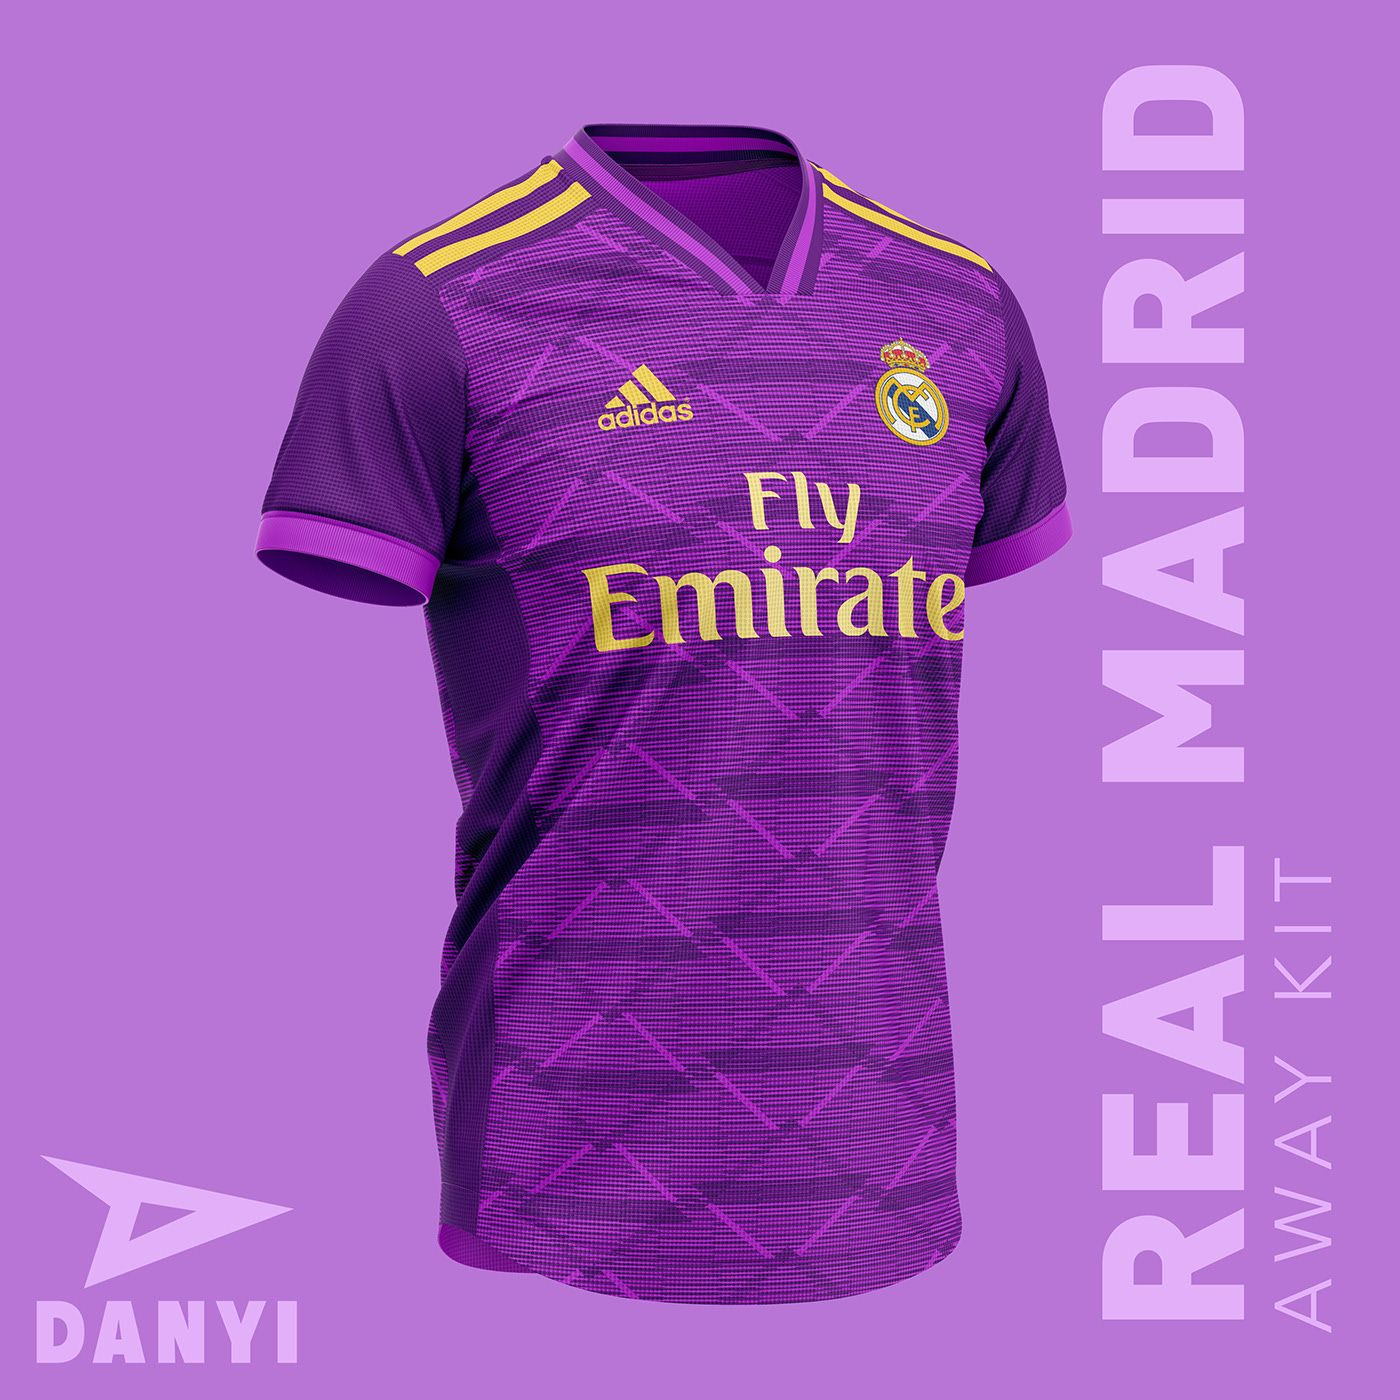 Real Madrid Football Kit 19 20 On Behance In 2020 Real Madrid Football Real Madrid Sports Jersey Design